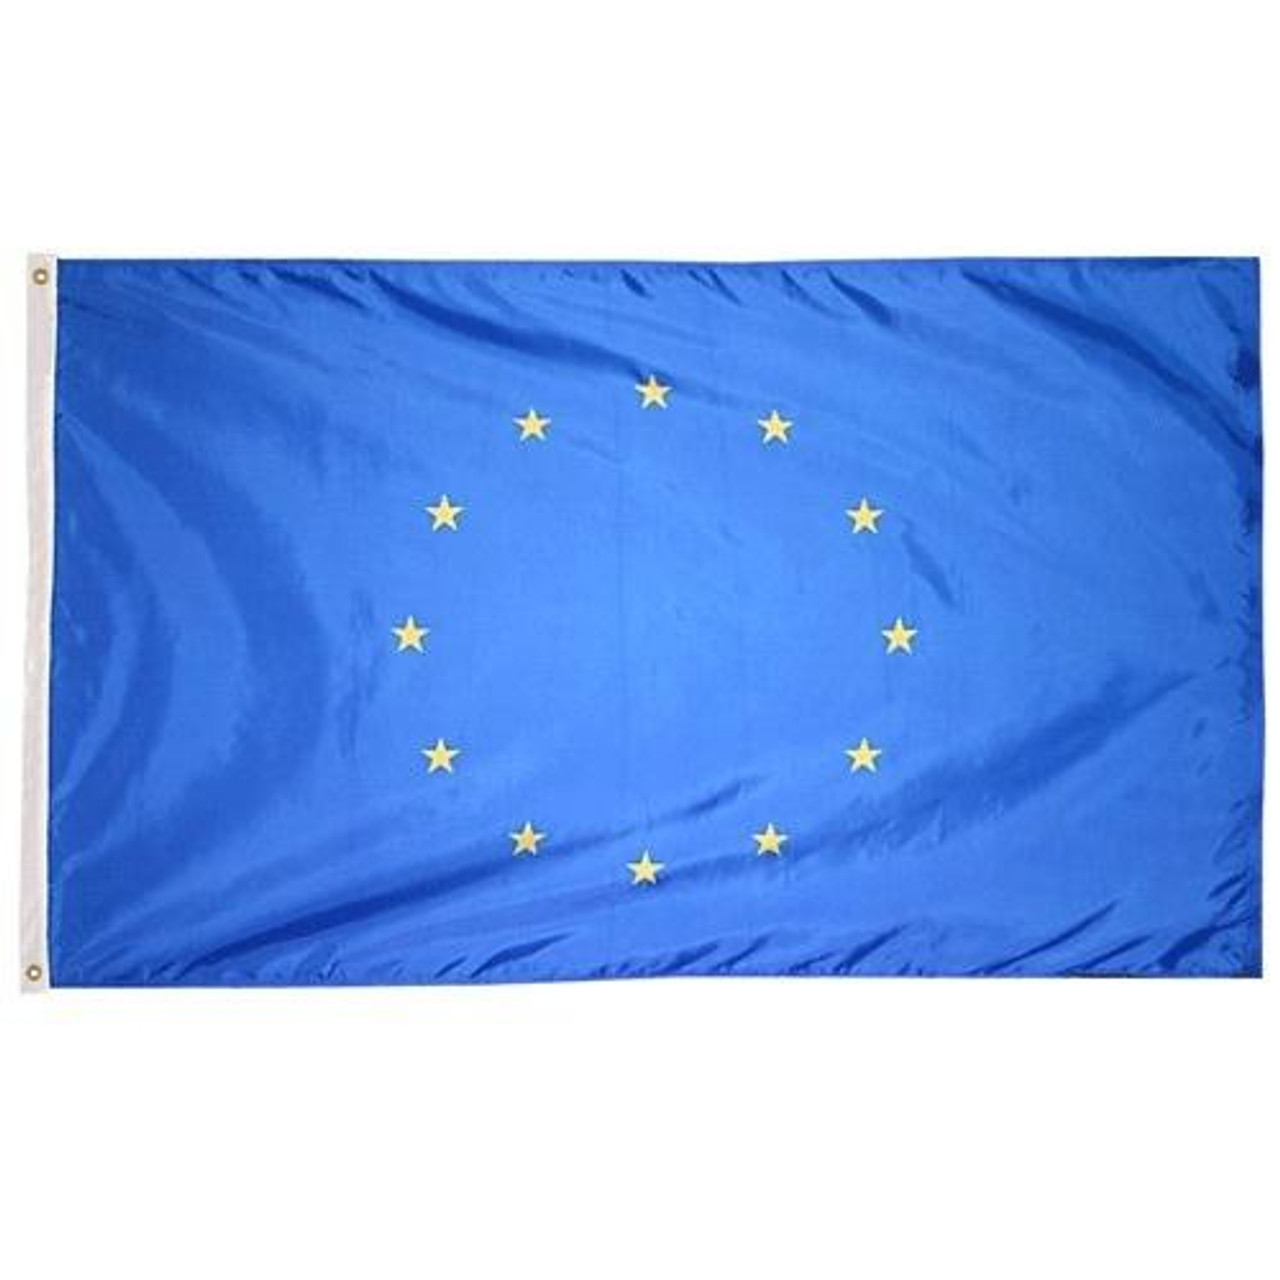 European Union Flag has a blue field with 12 yellow stars forming a circle at the center.